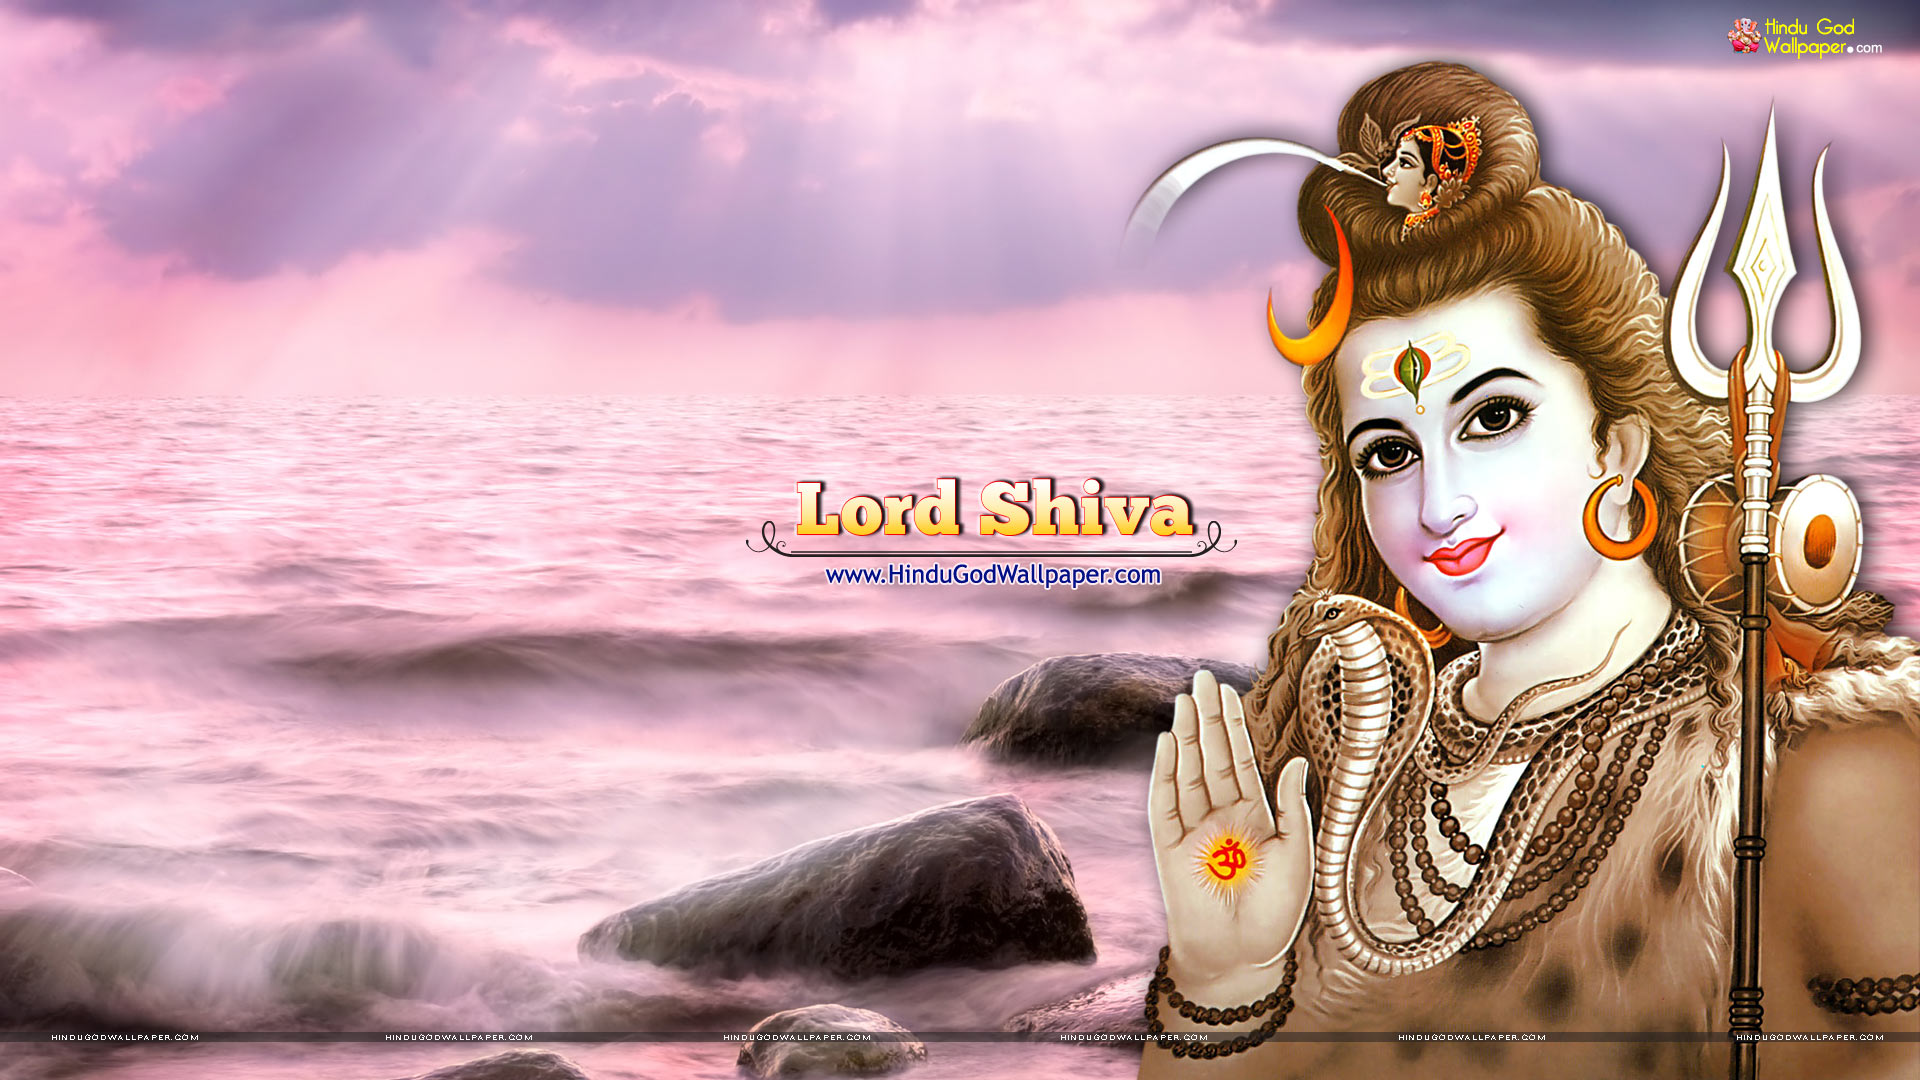 Lord Shiva Full Hd 1080p Photo: Hindu God HD Wallpapers 1080p